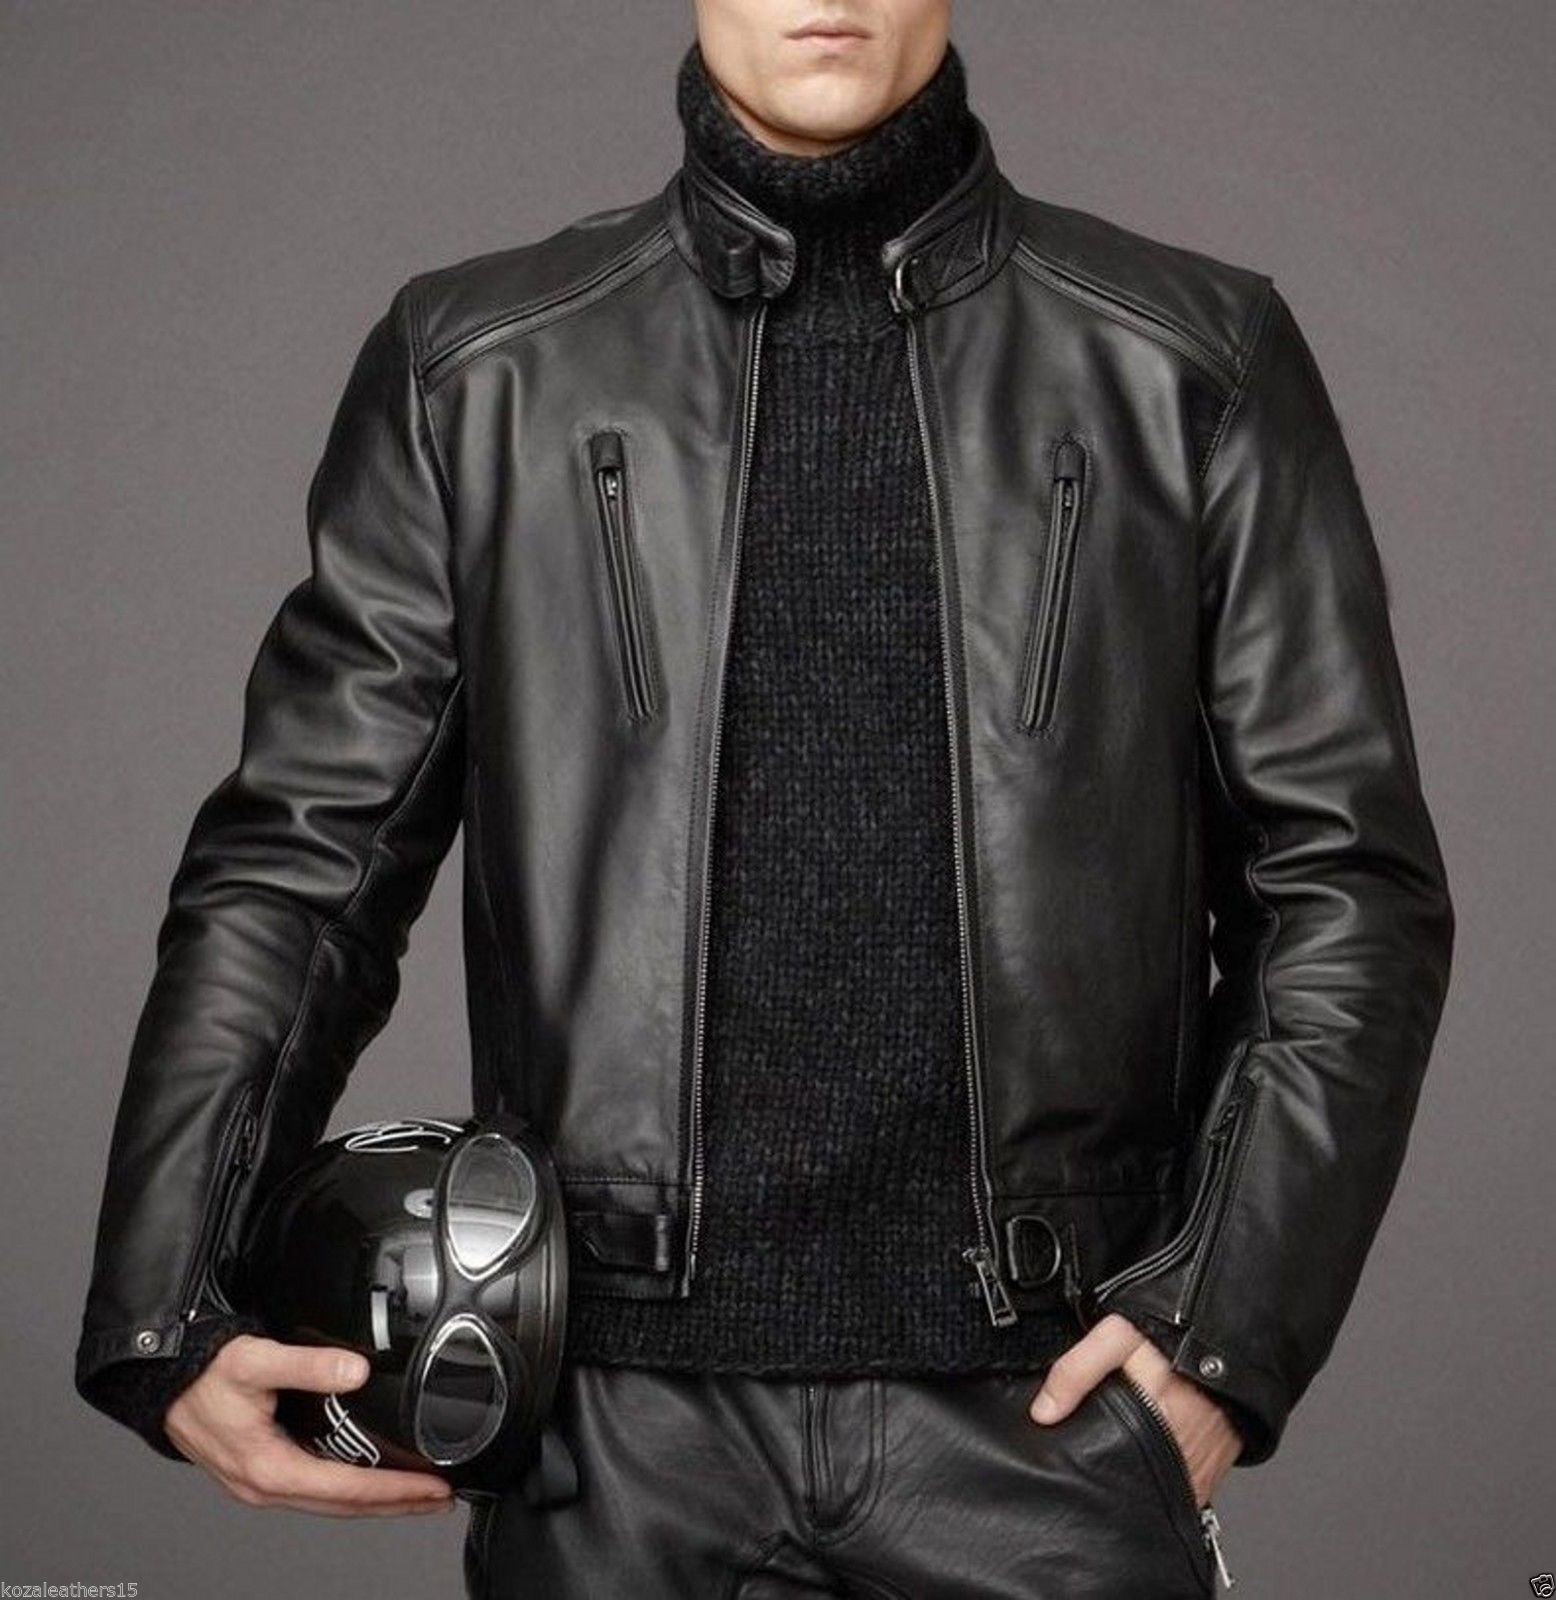 Authentic leather jackets